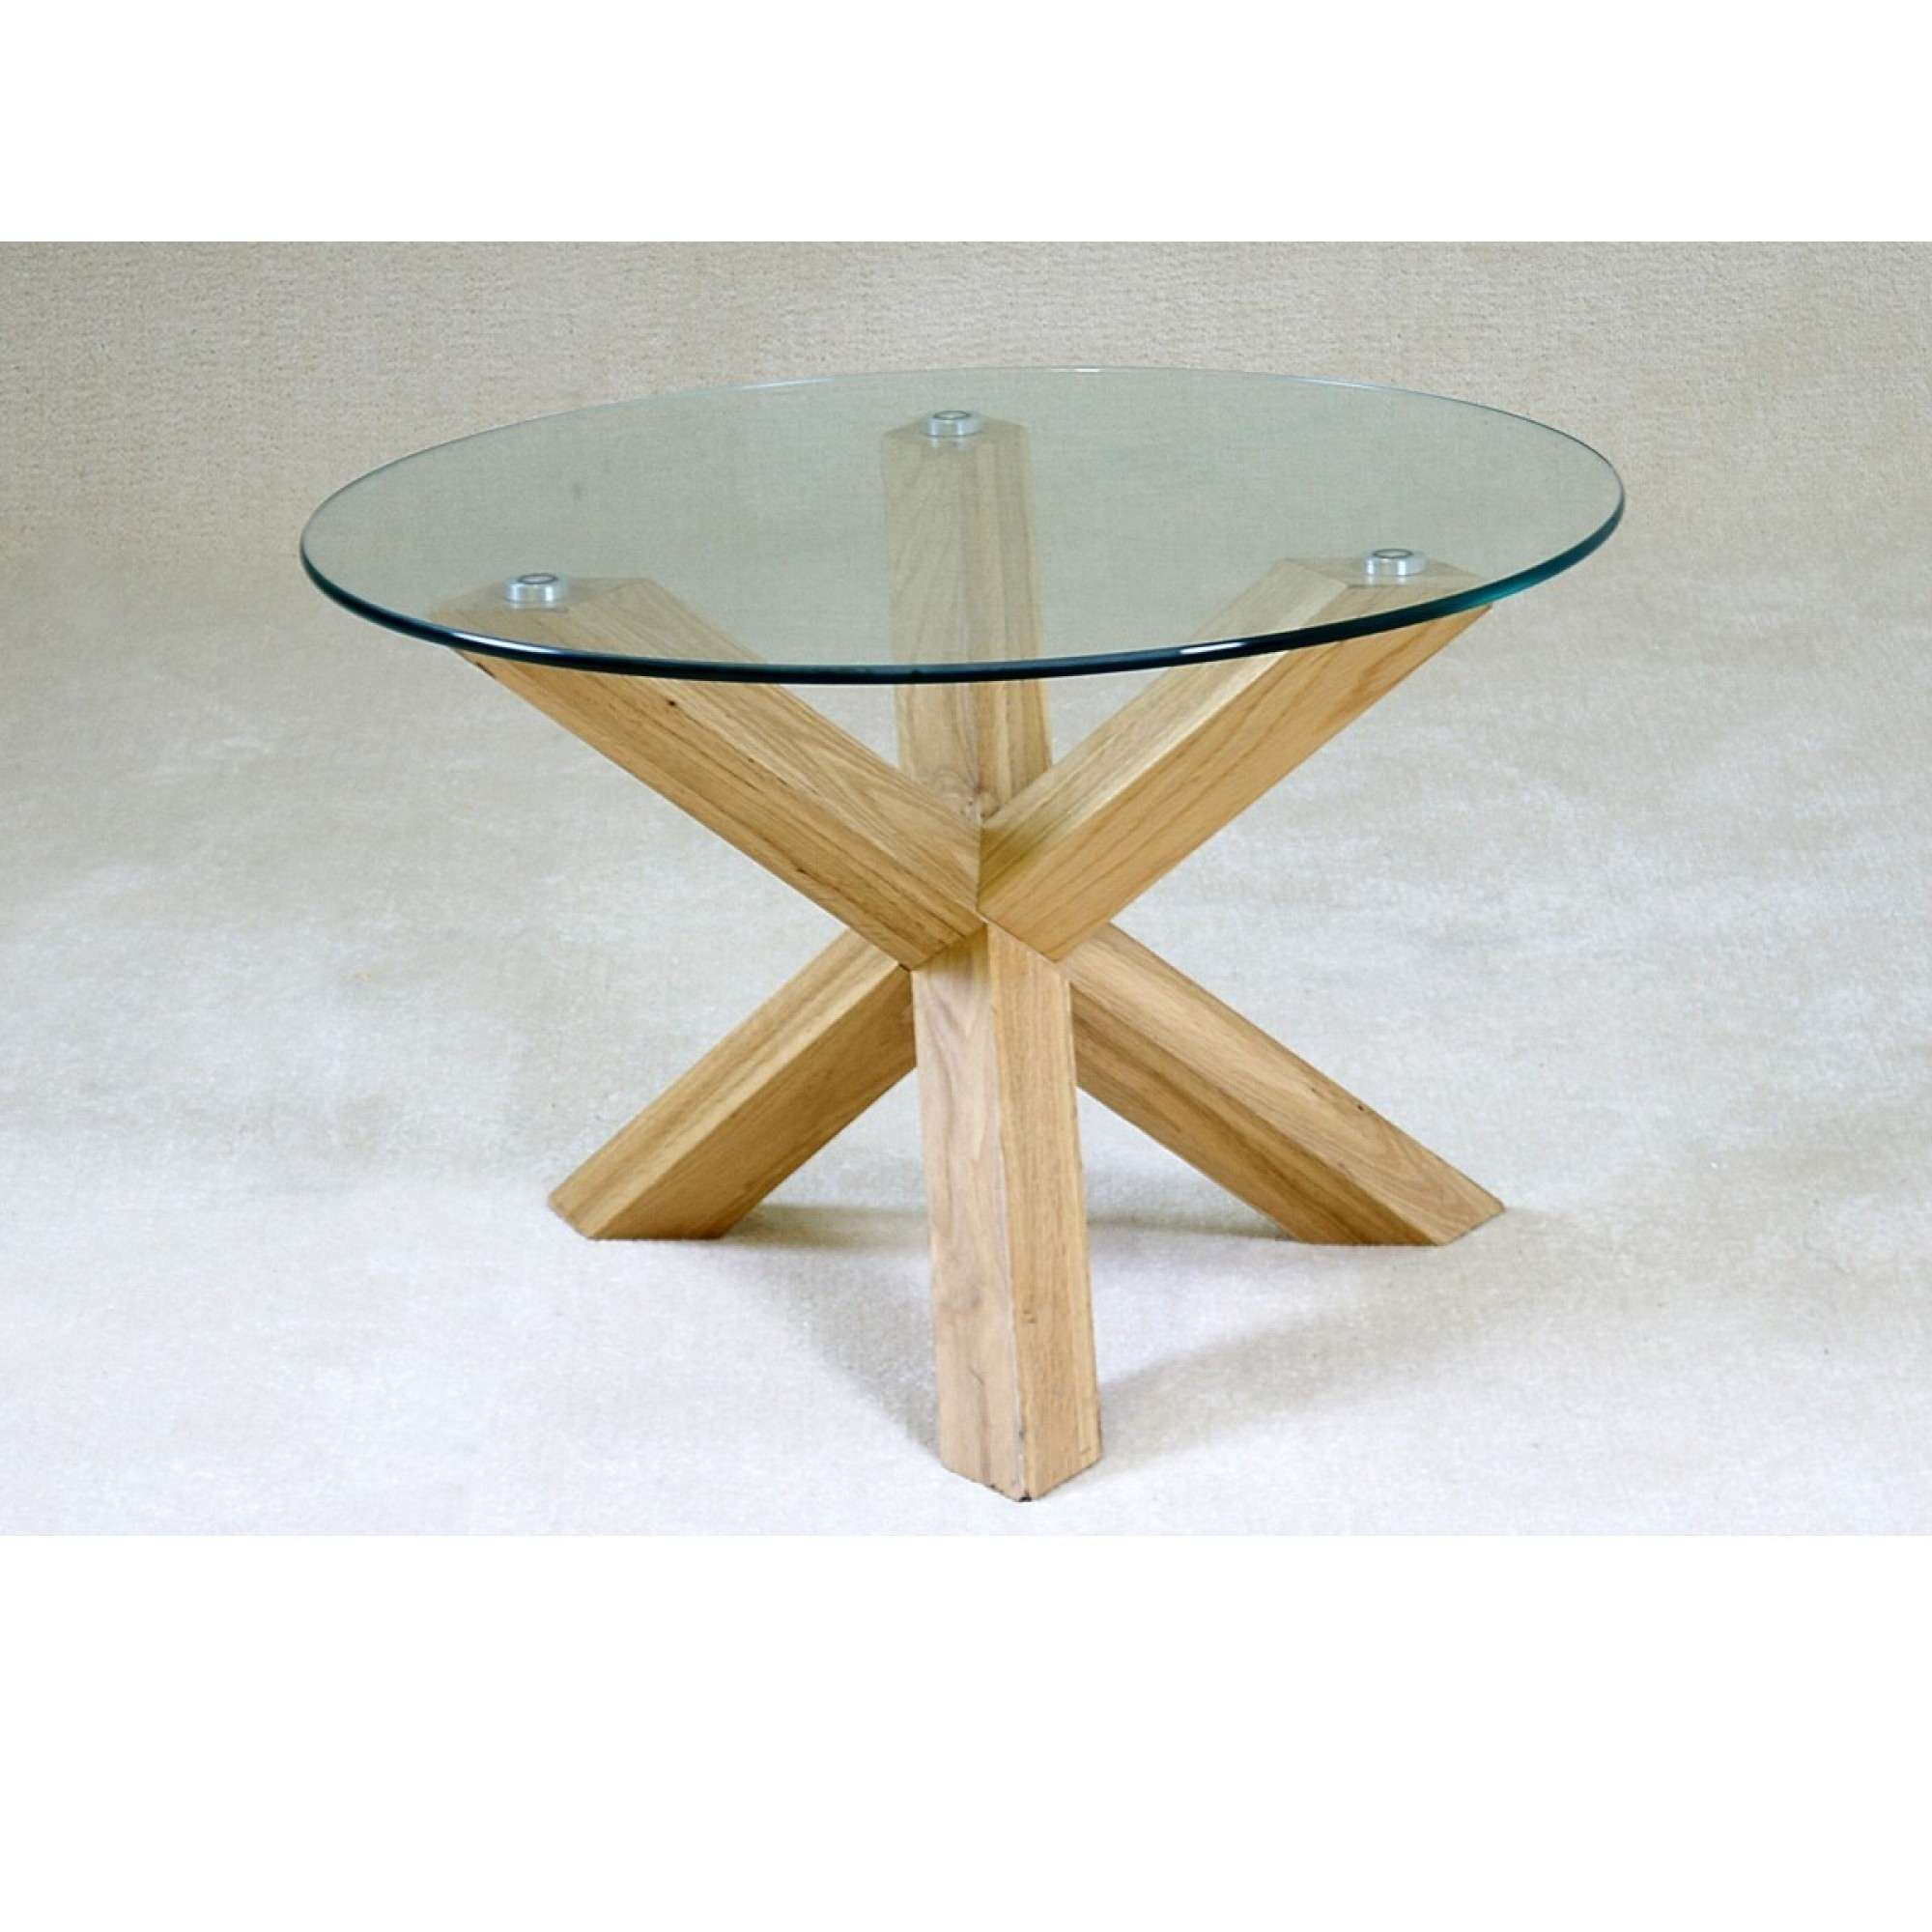 Current Round Glass Coffee Tables For Coffee Tables : Round Glass Coffee Table Wood Base Simple Elegance (View 6 of 20)